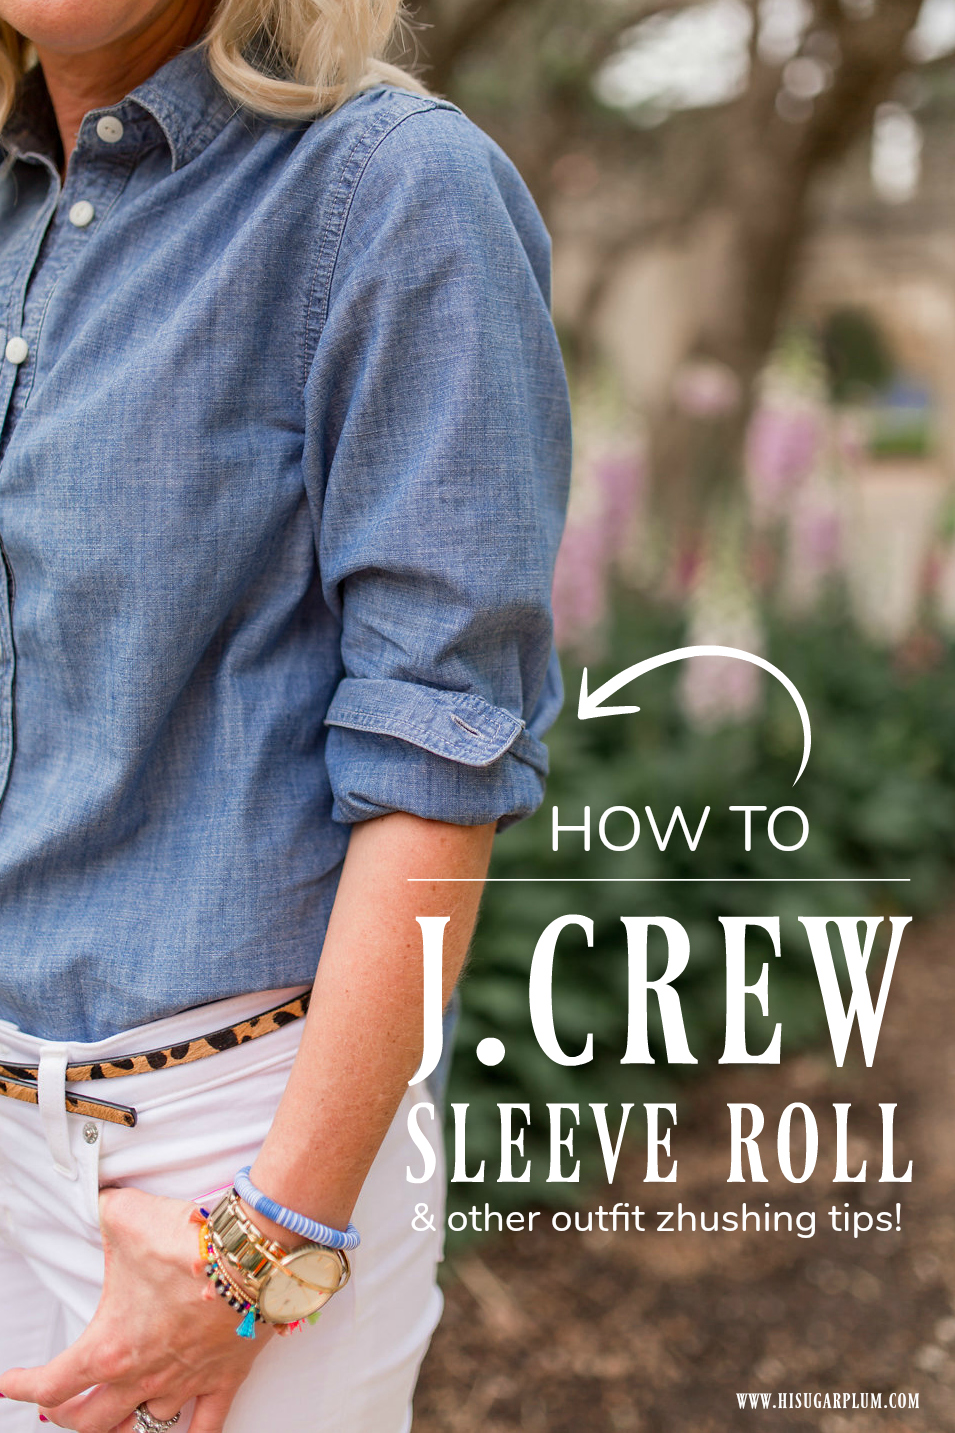 How to Do the J.Crew Sleeve Roll & Other Outfit Zhushing Tricks